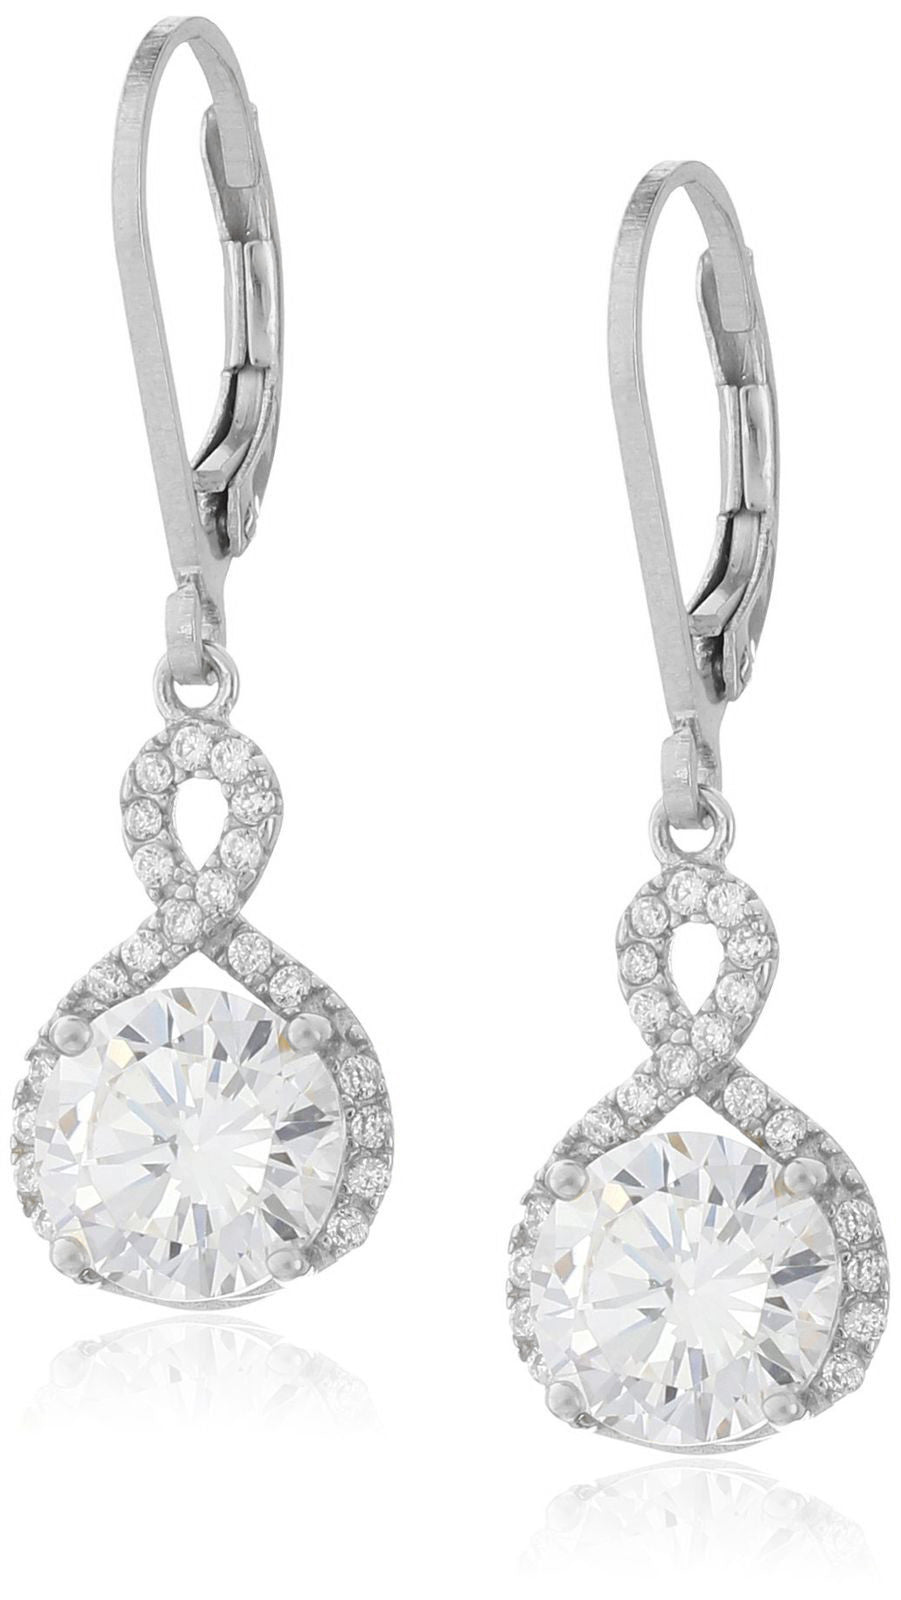 Swarovski Infinity Crystal Drop Earrings - Silver Gold